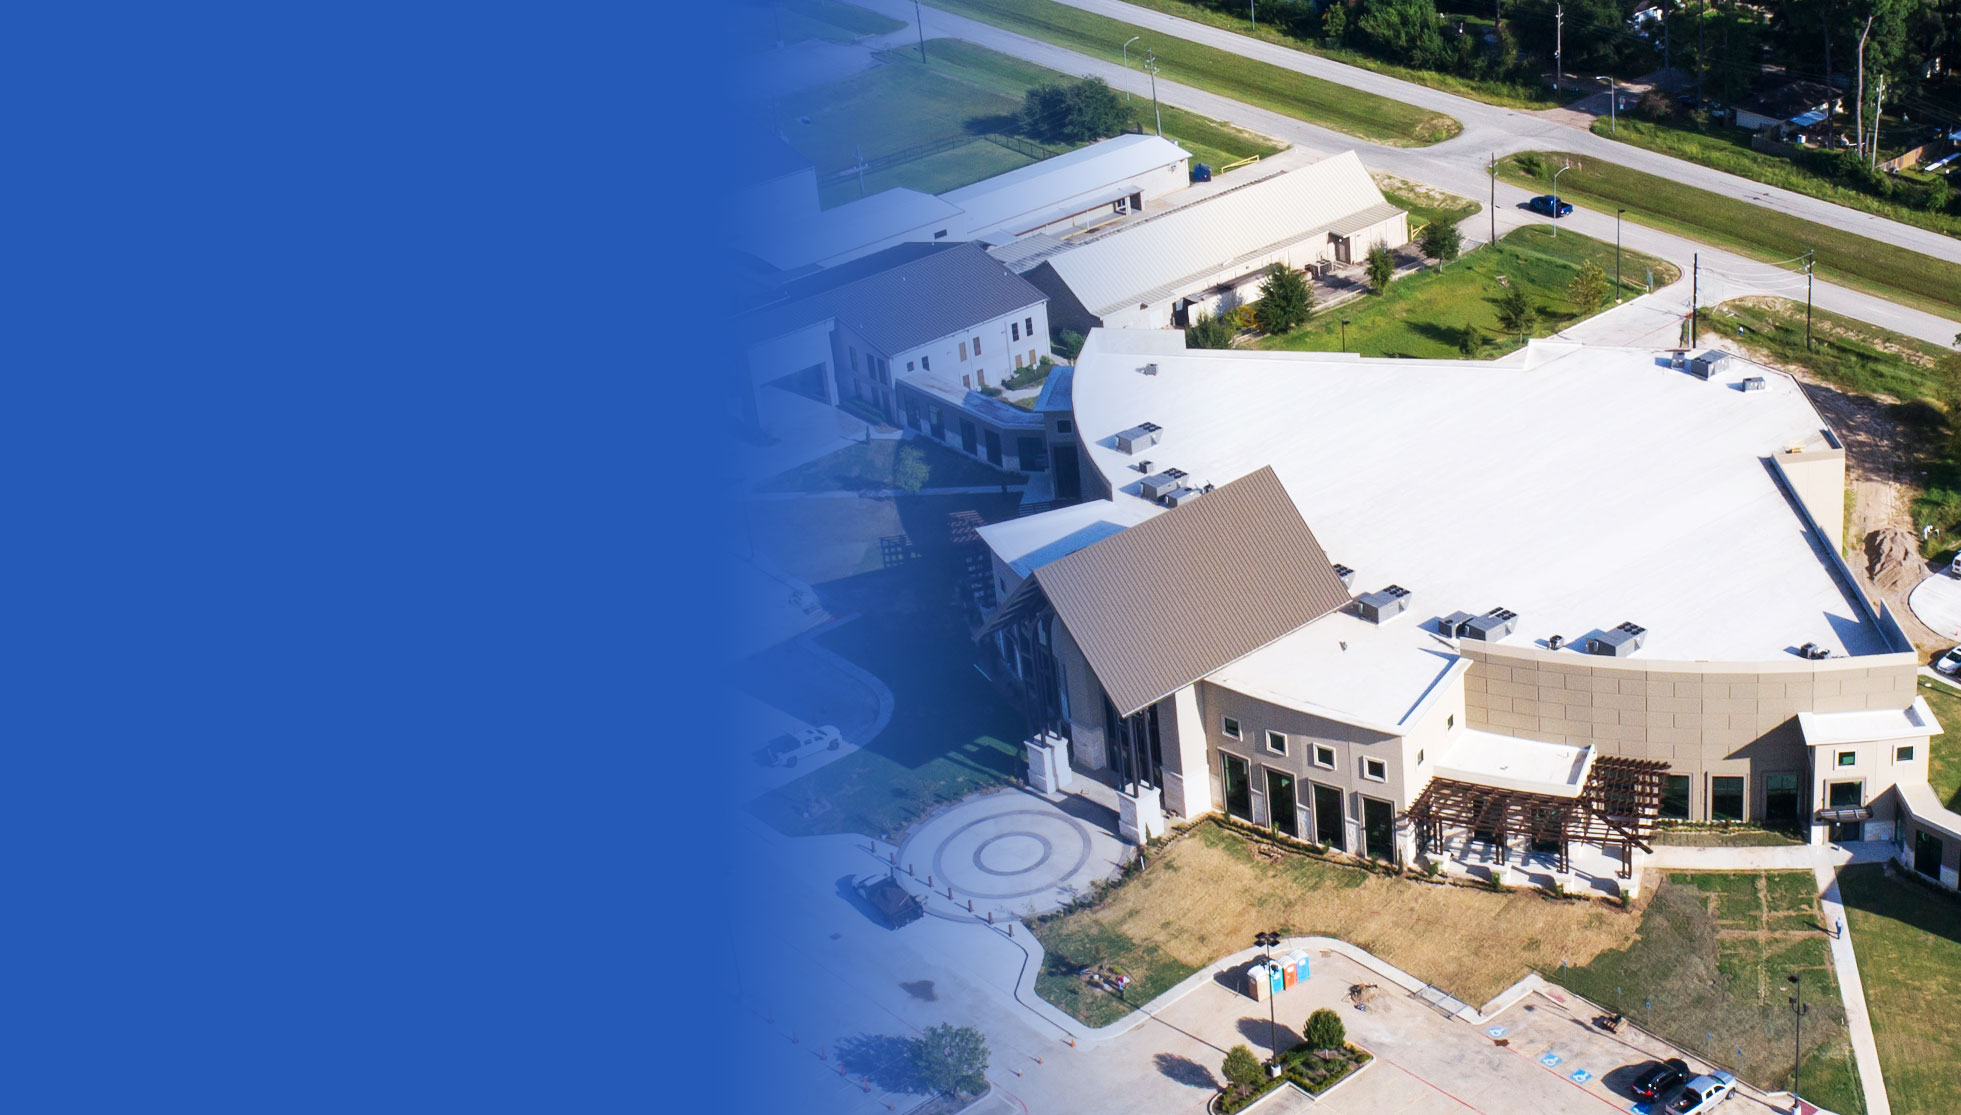 Contact Samson Roofing